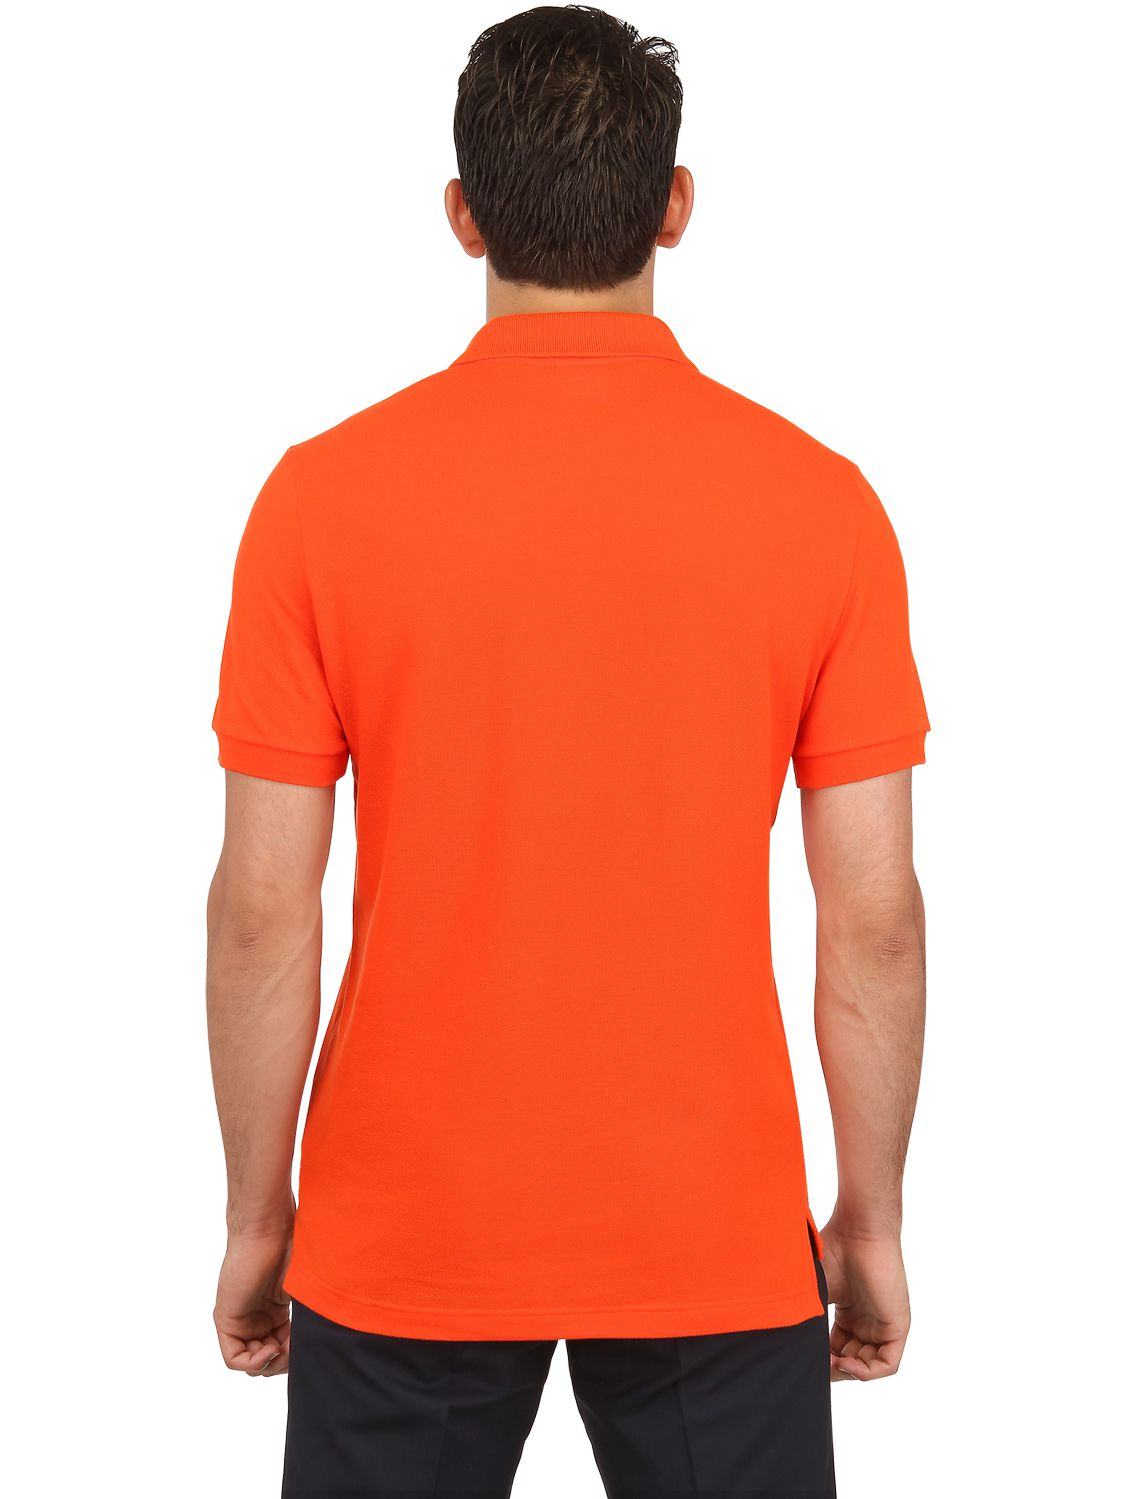 lacoste petit piqu polo shirt in orange for men lyst. Black Bedroom Furniture Sets. Home Design Ideas